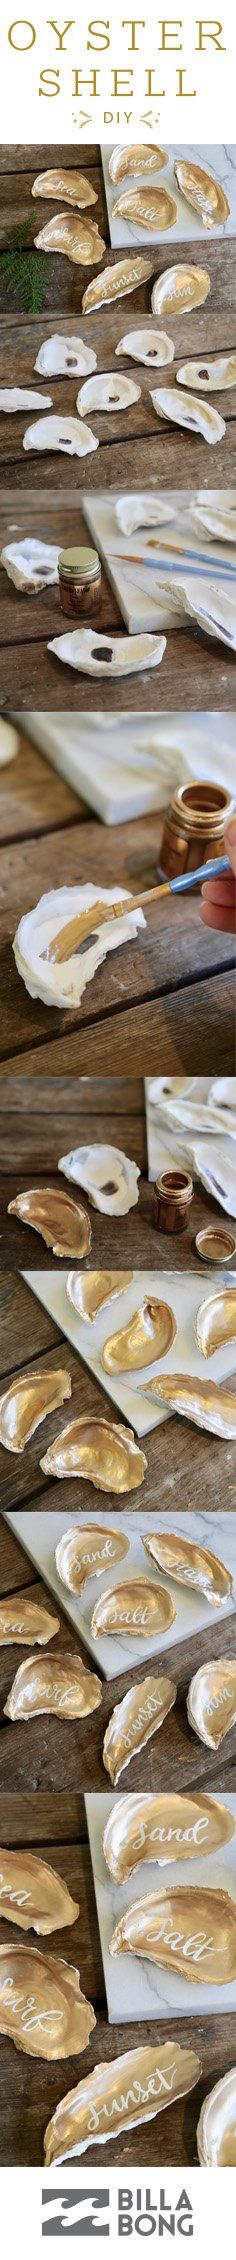 DIY #giveBILLABONG Oyster Shell // personalize for your guests this season.